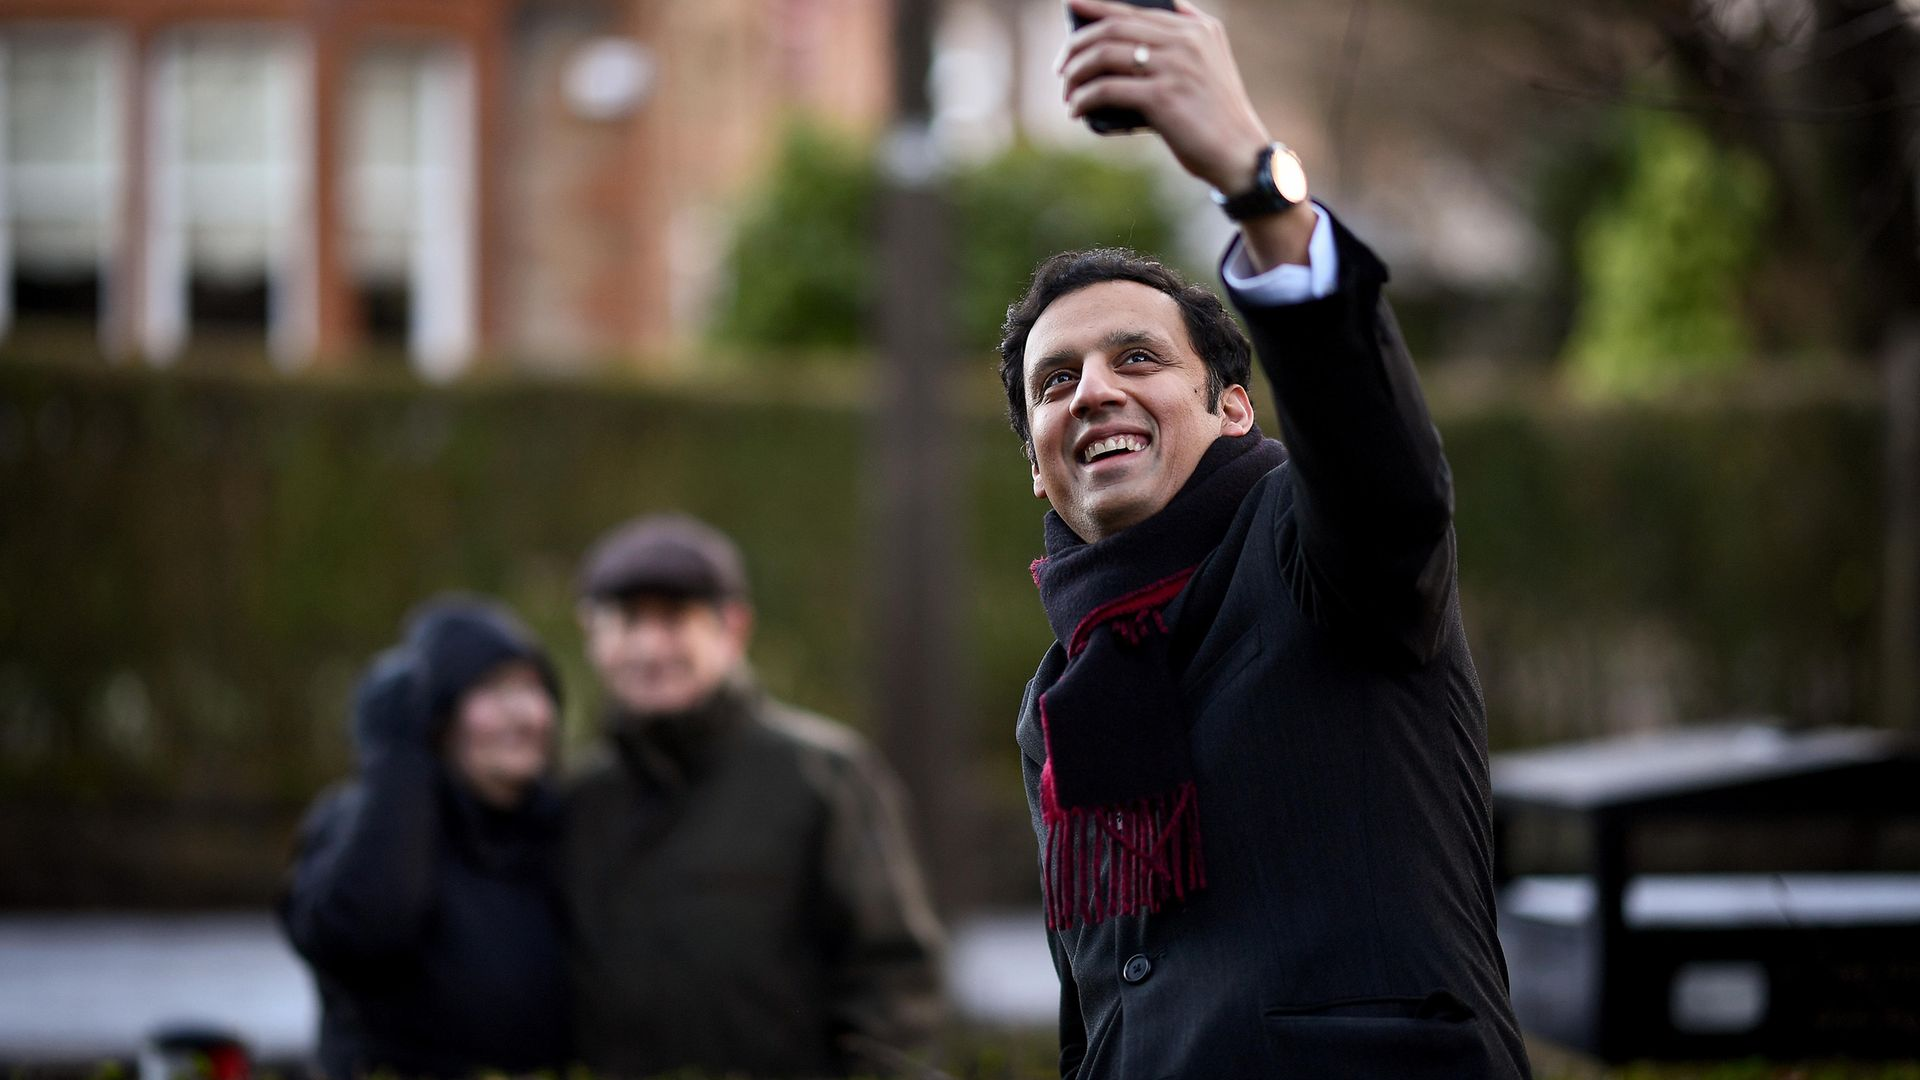 Scottish Labour MSP, Anas Sarwar, poses for a portrait in Glasgow, Scotland, shortly after announcing his bid to become the next Scottish Labour leader - Credit: Getty Images